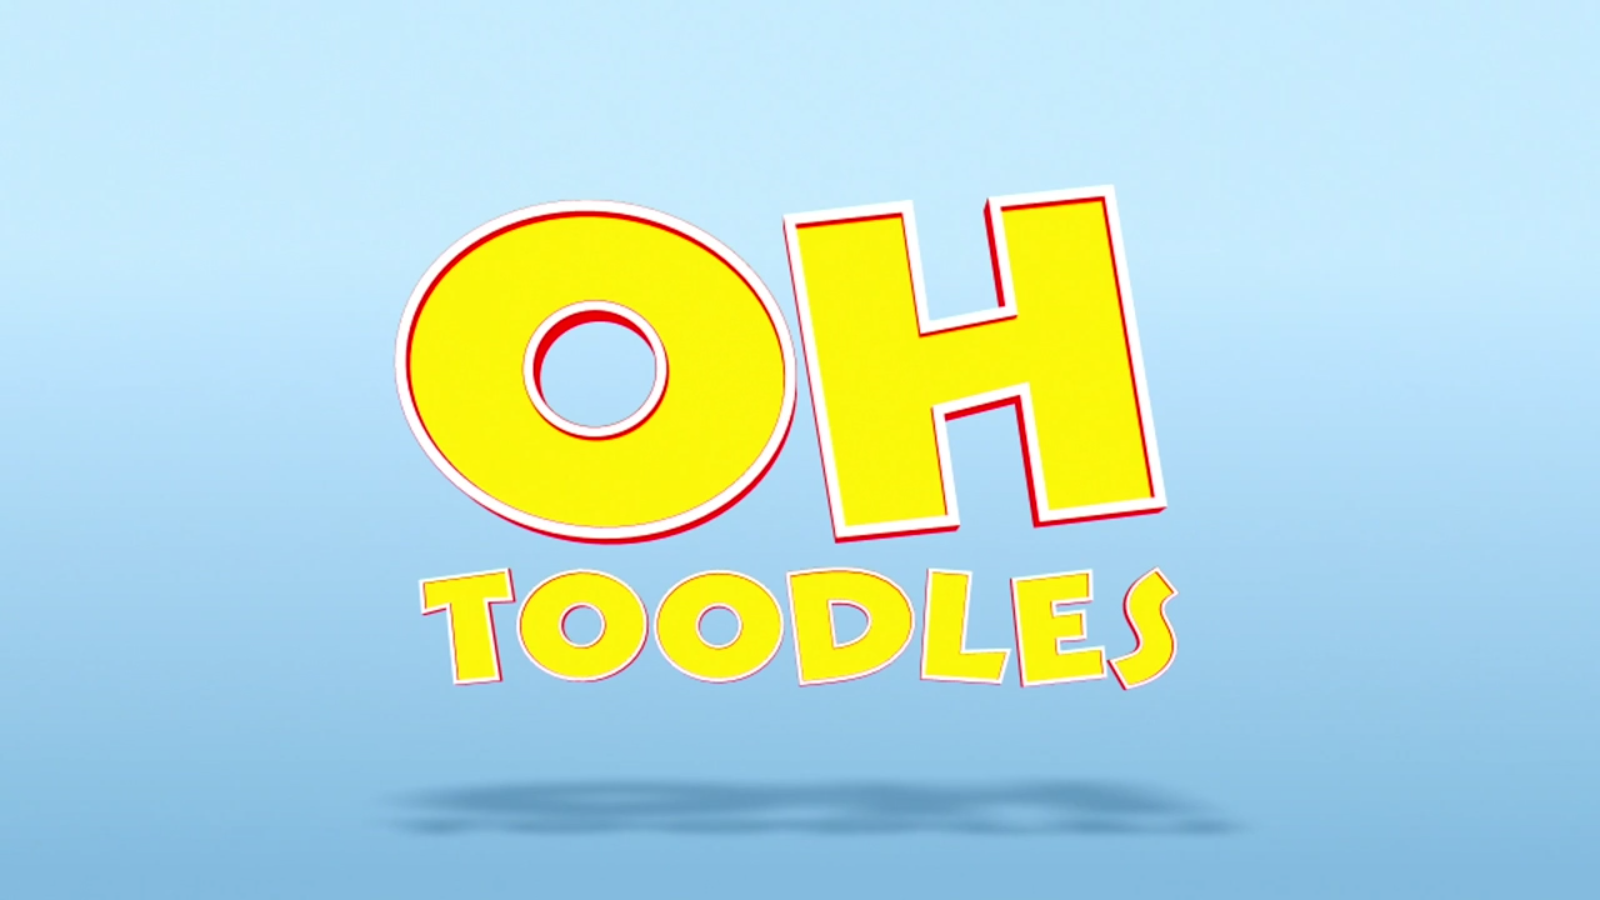 Oh Toodles